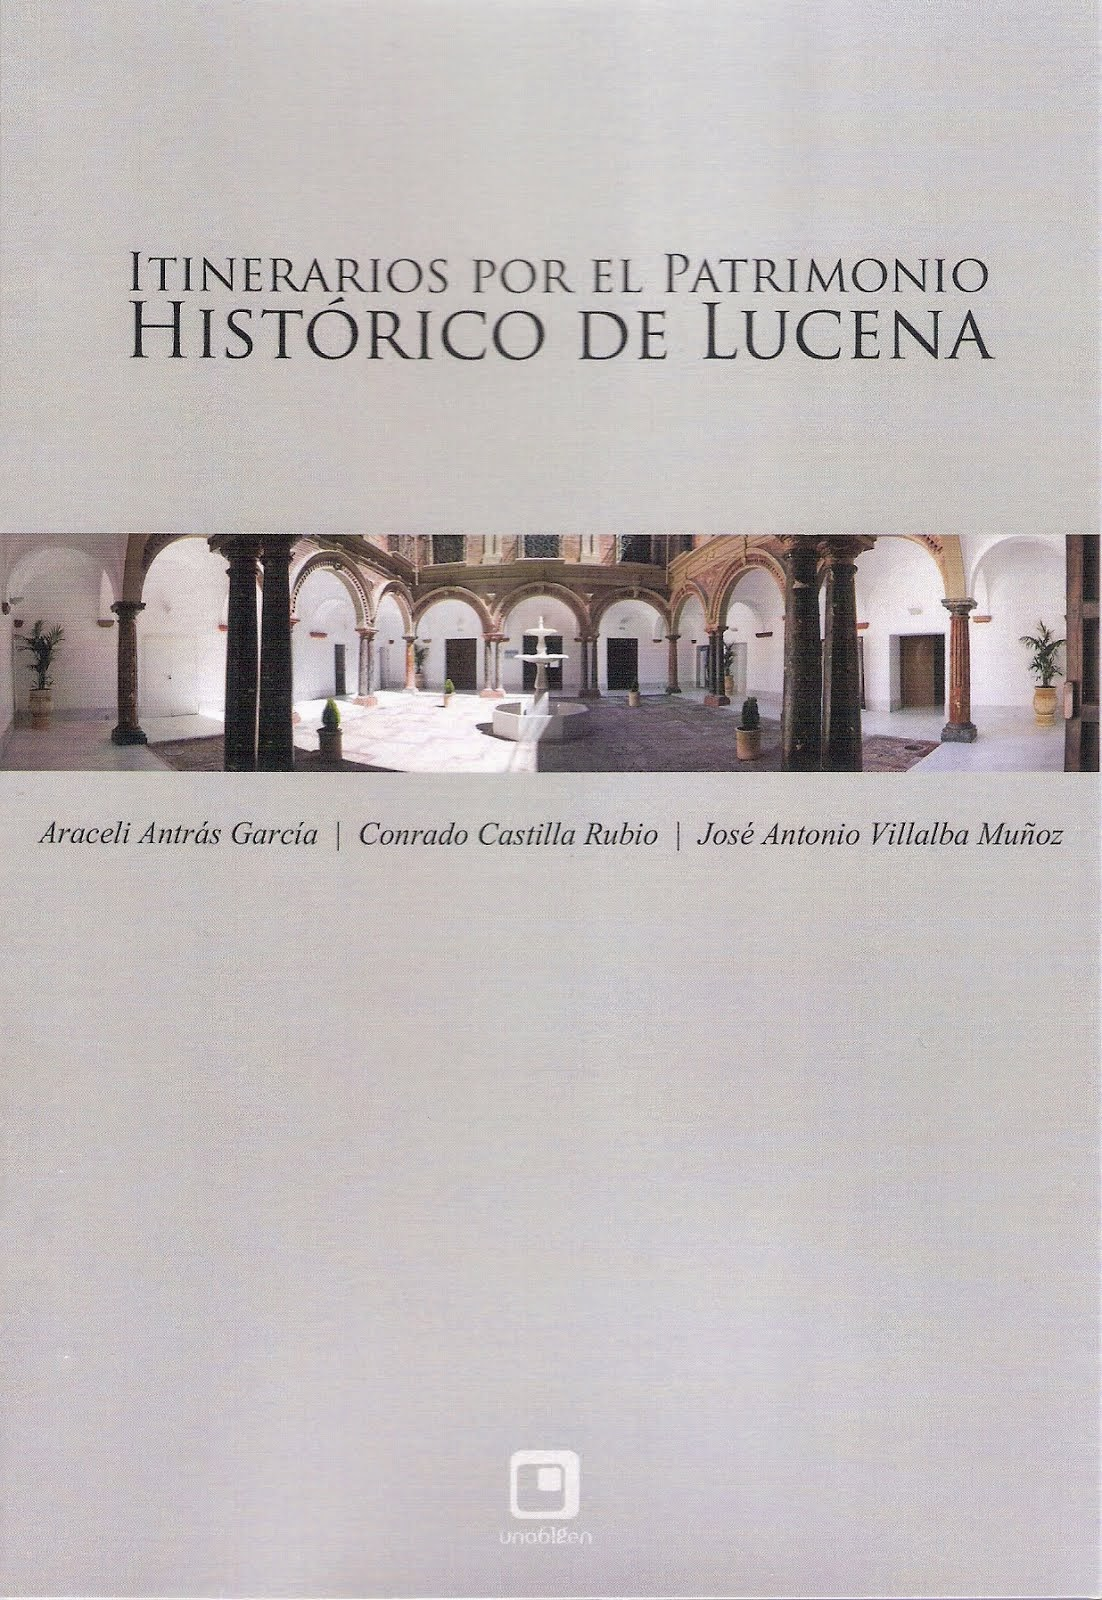 Itinerarios por el patrimonio histórico de Lucena